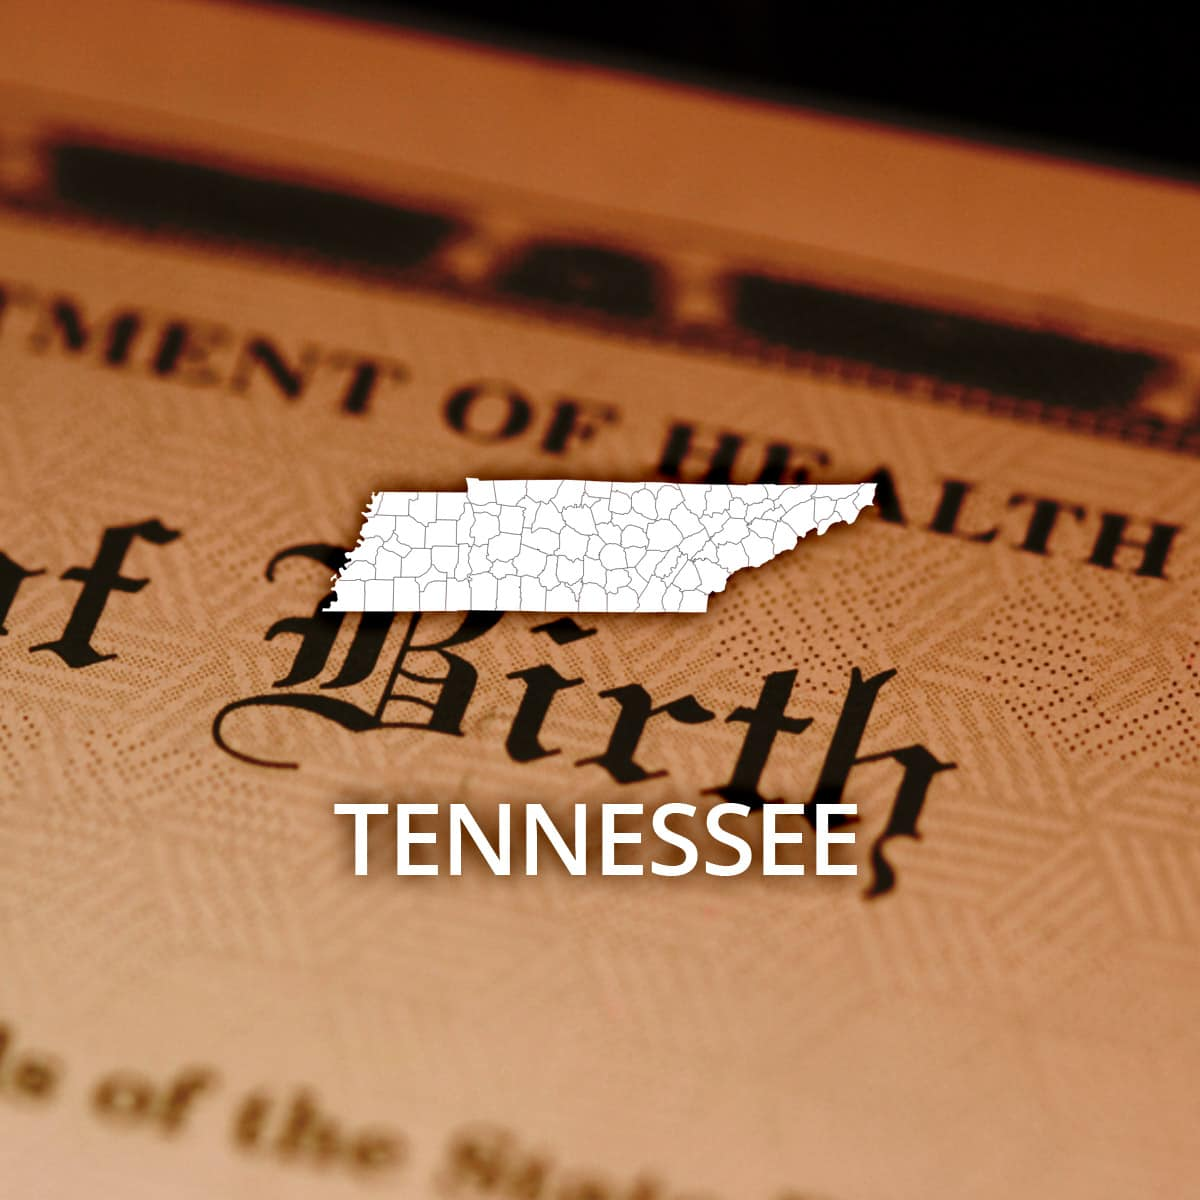 Where to Obtain a Tennessee Birth Certificate